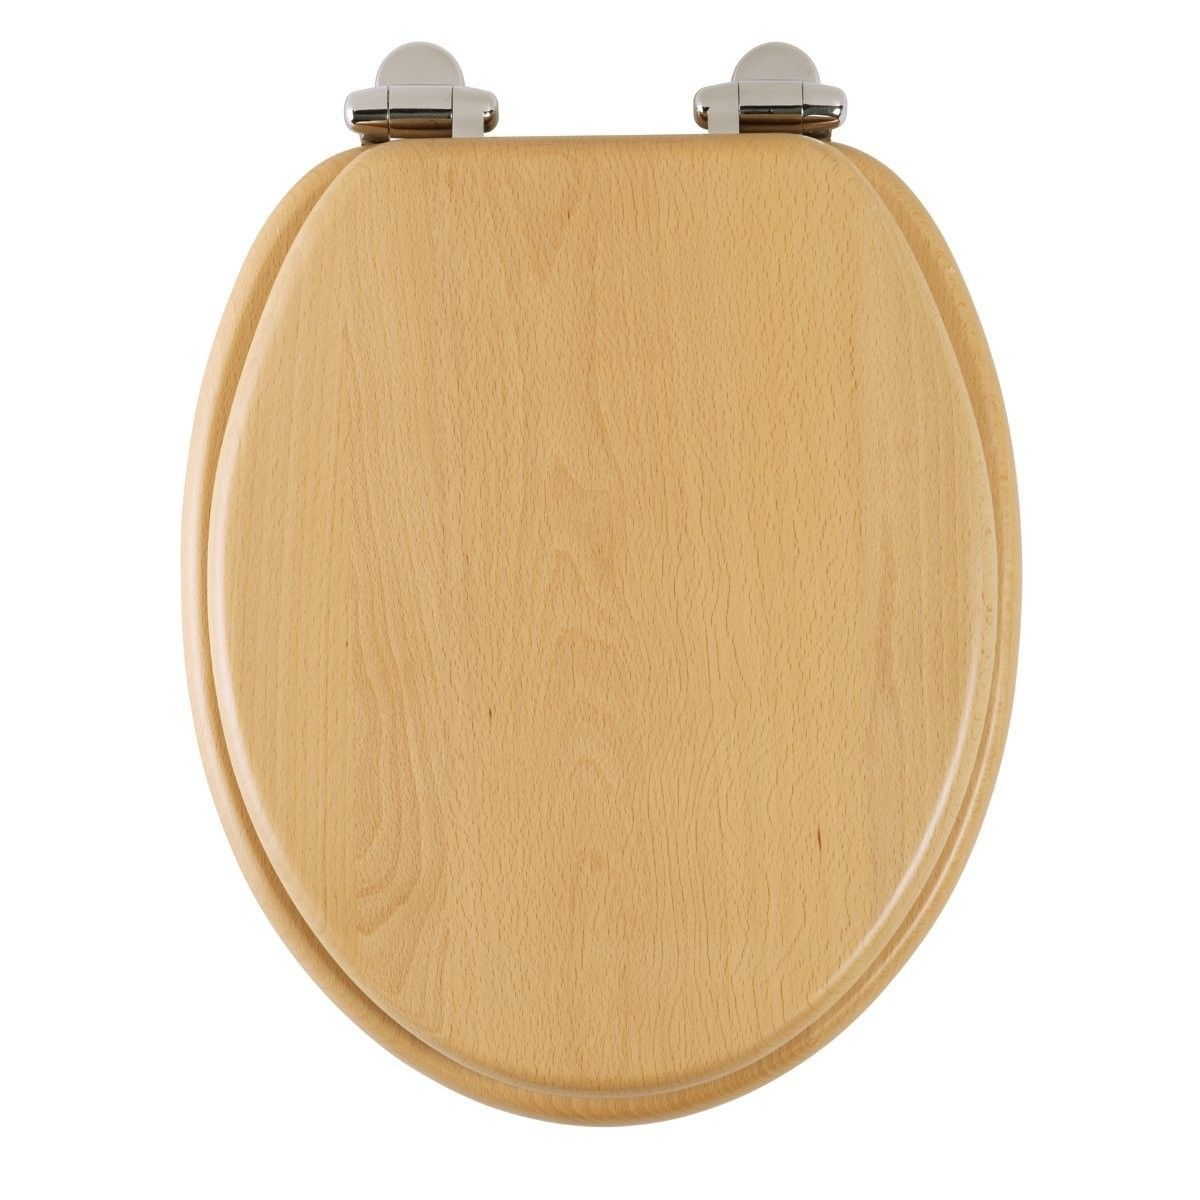 Roper Rhodes Traditional Solid Wood Soft Close Toilet Seat